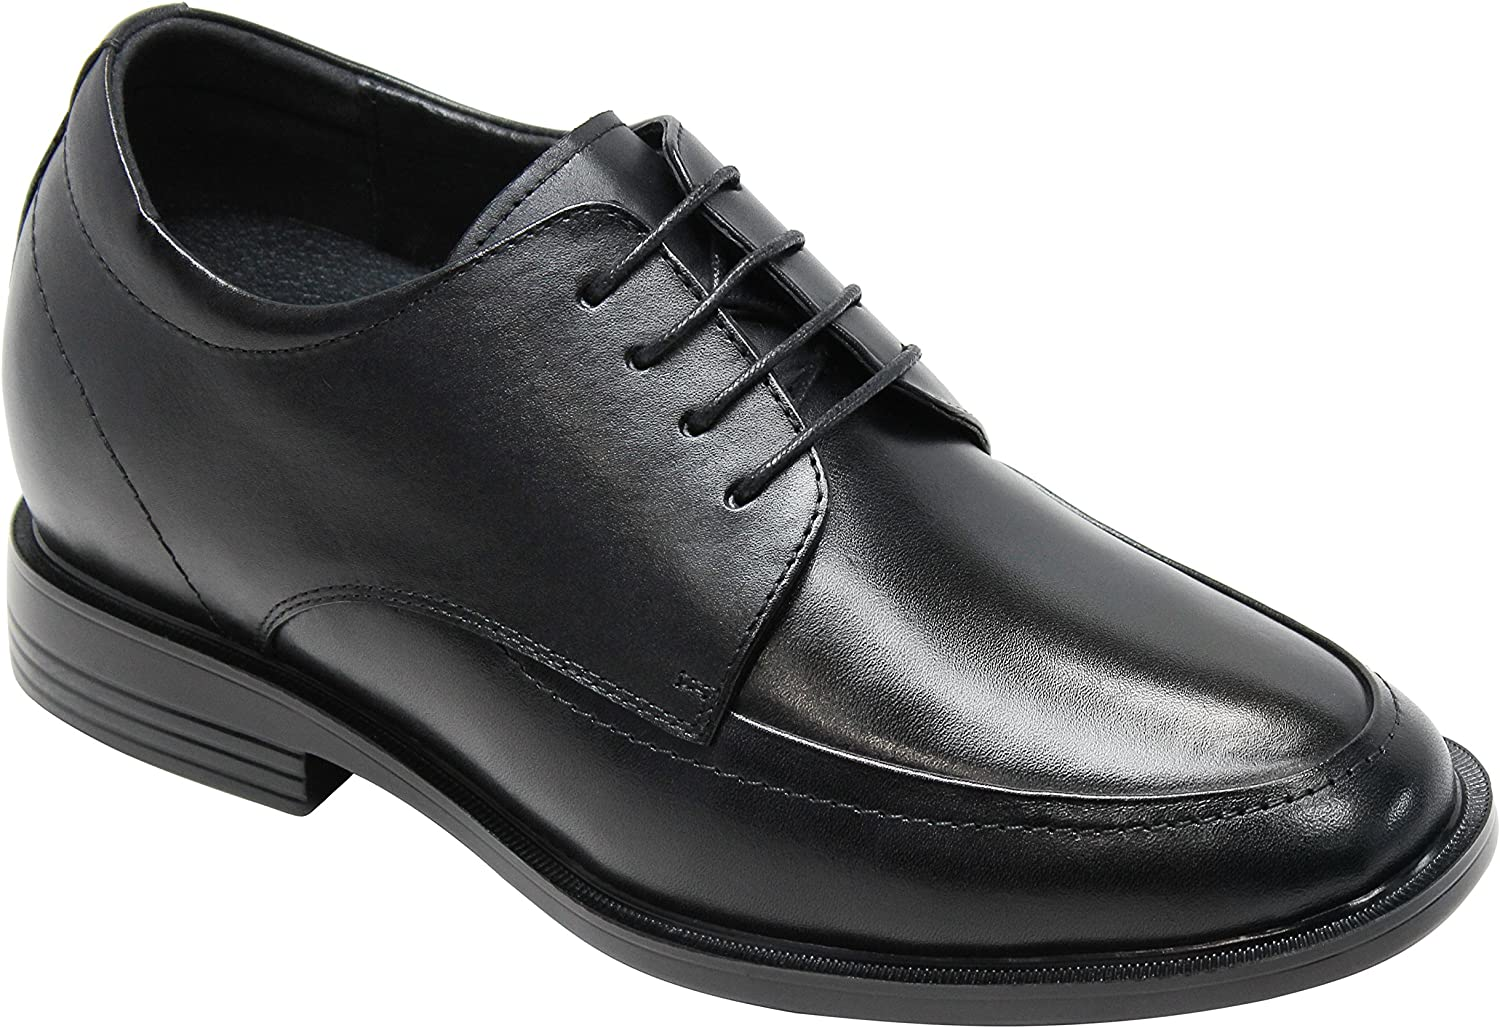 CALTO Men's Invisible Height Increasing Elevator Shoes - Black Premium Leather Lace-up Lightweight Formal Oxfords - 3 Inches Taller - T51302